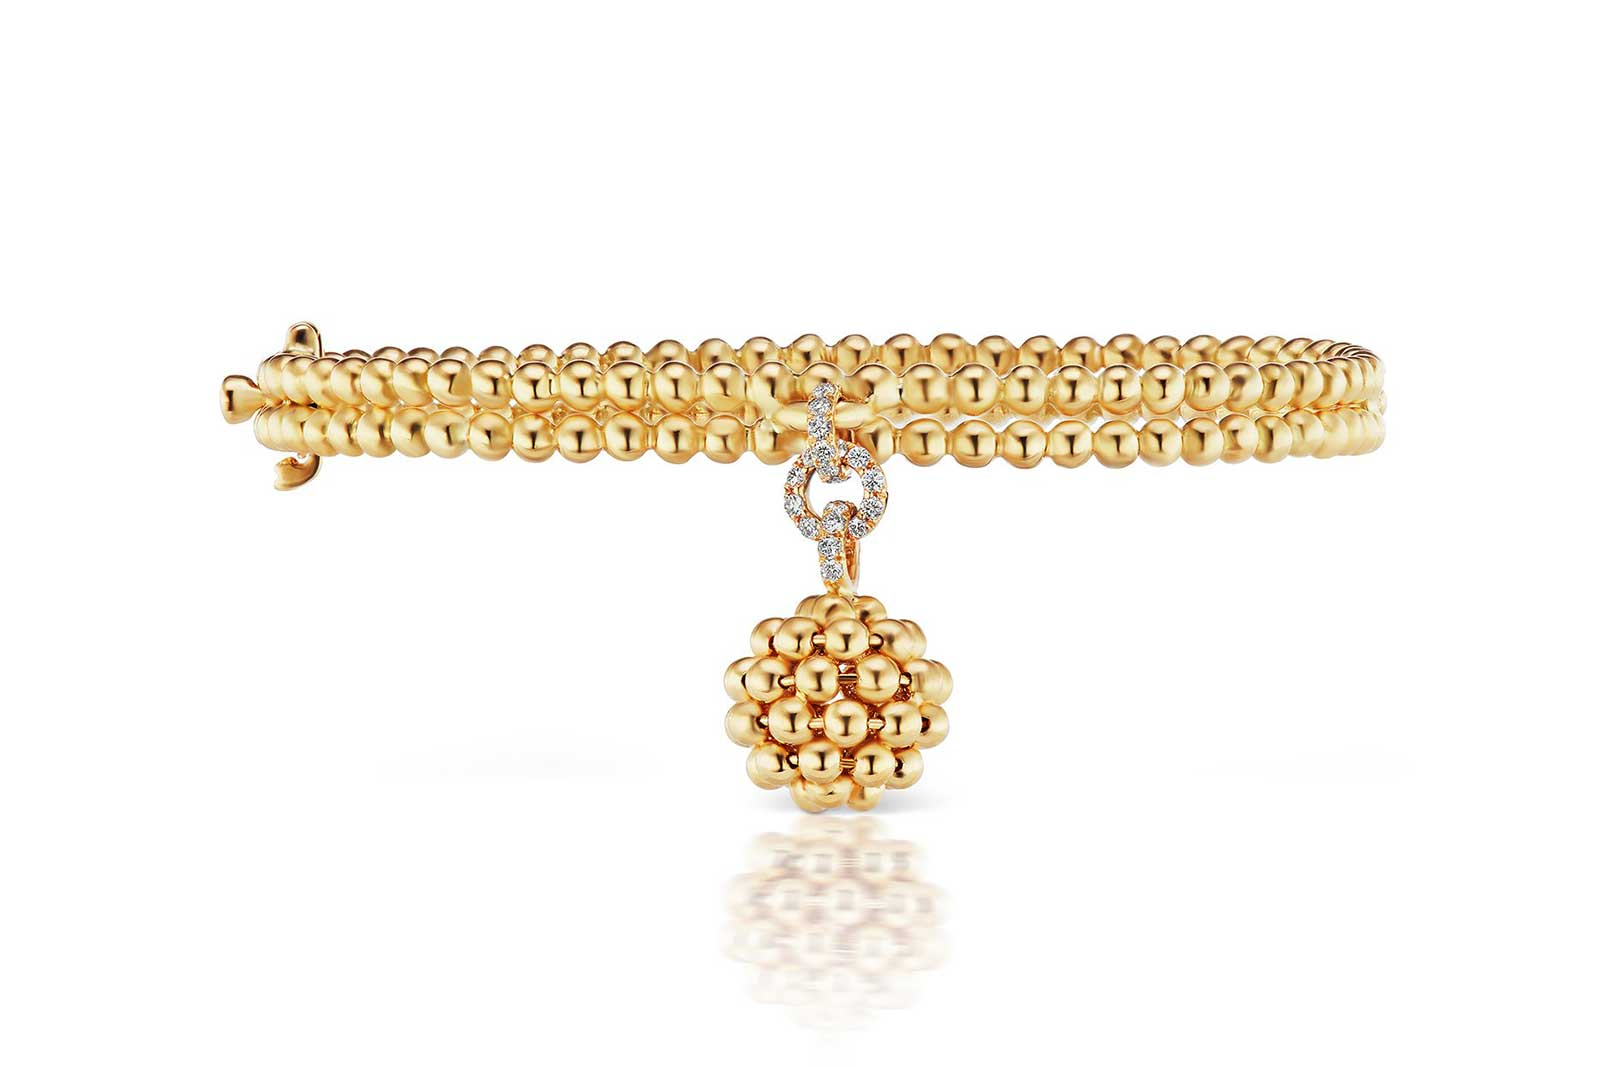 Maria Canale 'Flapper' collection bracelet with diamonds in 18k yellow gold